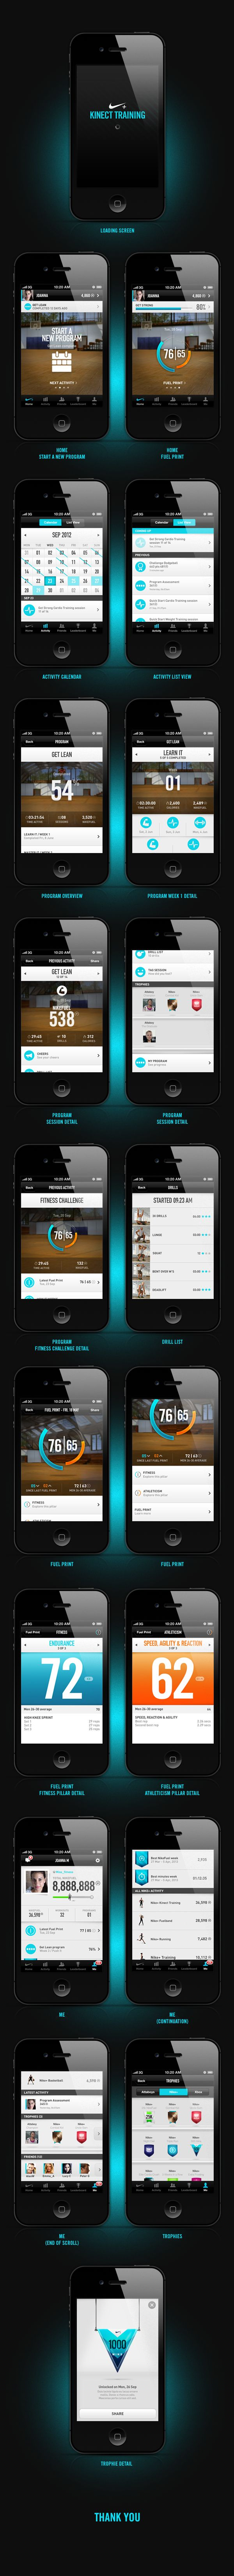 Nike+ Kinect Training (iphone app) by João Planche, via Behance